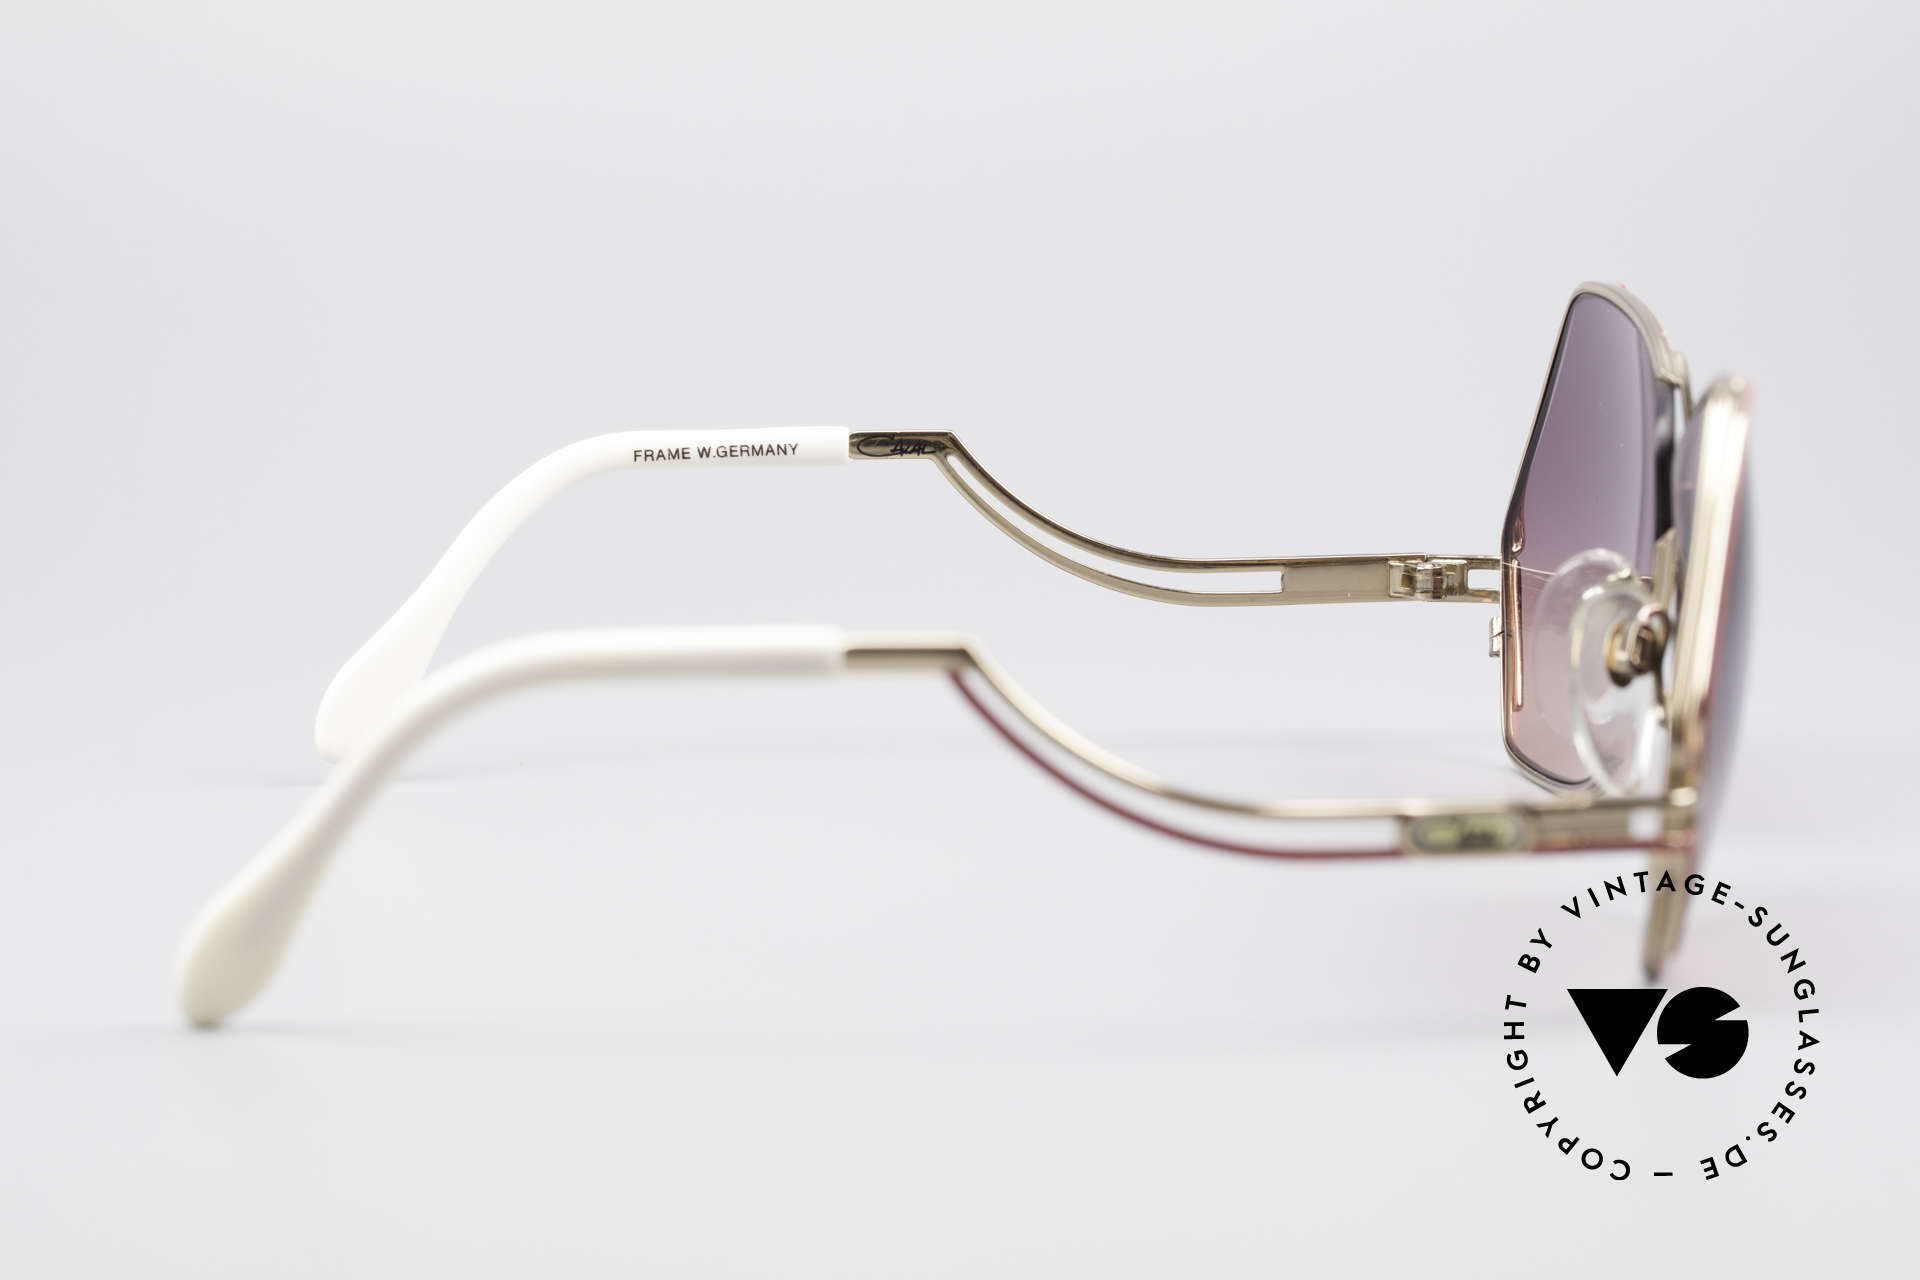 Cazal 226 Vintage Ladies Sunglasses, the sun lenses can be replaced with optical (sun) lenses, Made for Women